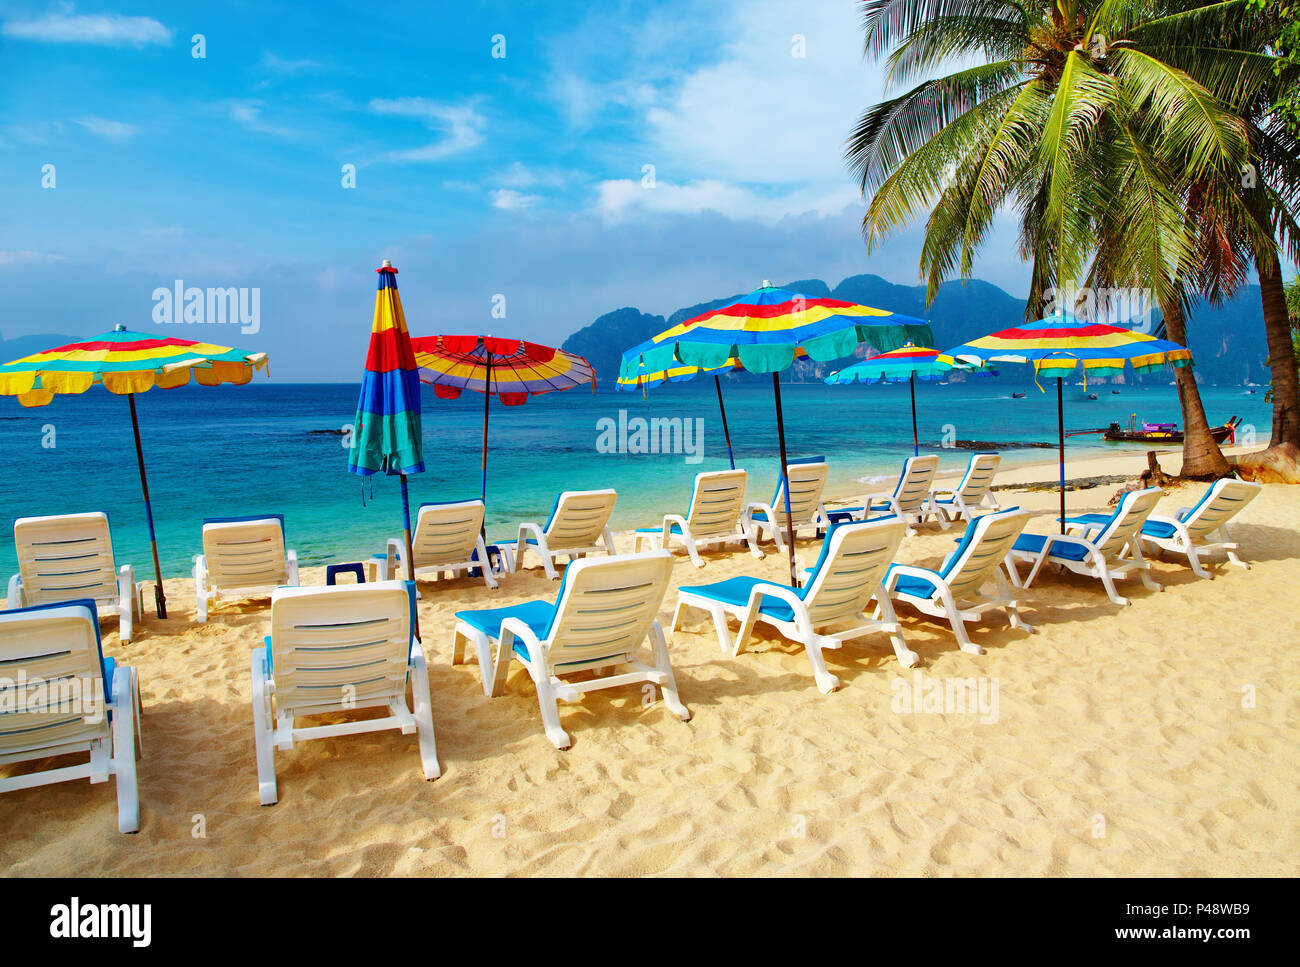 Tropical beach, Phi-Phi Islands, Andaman Sea, Thailand - Stock Image